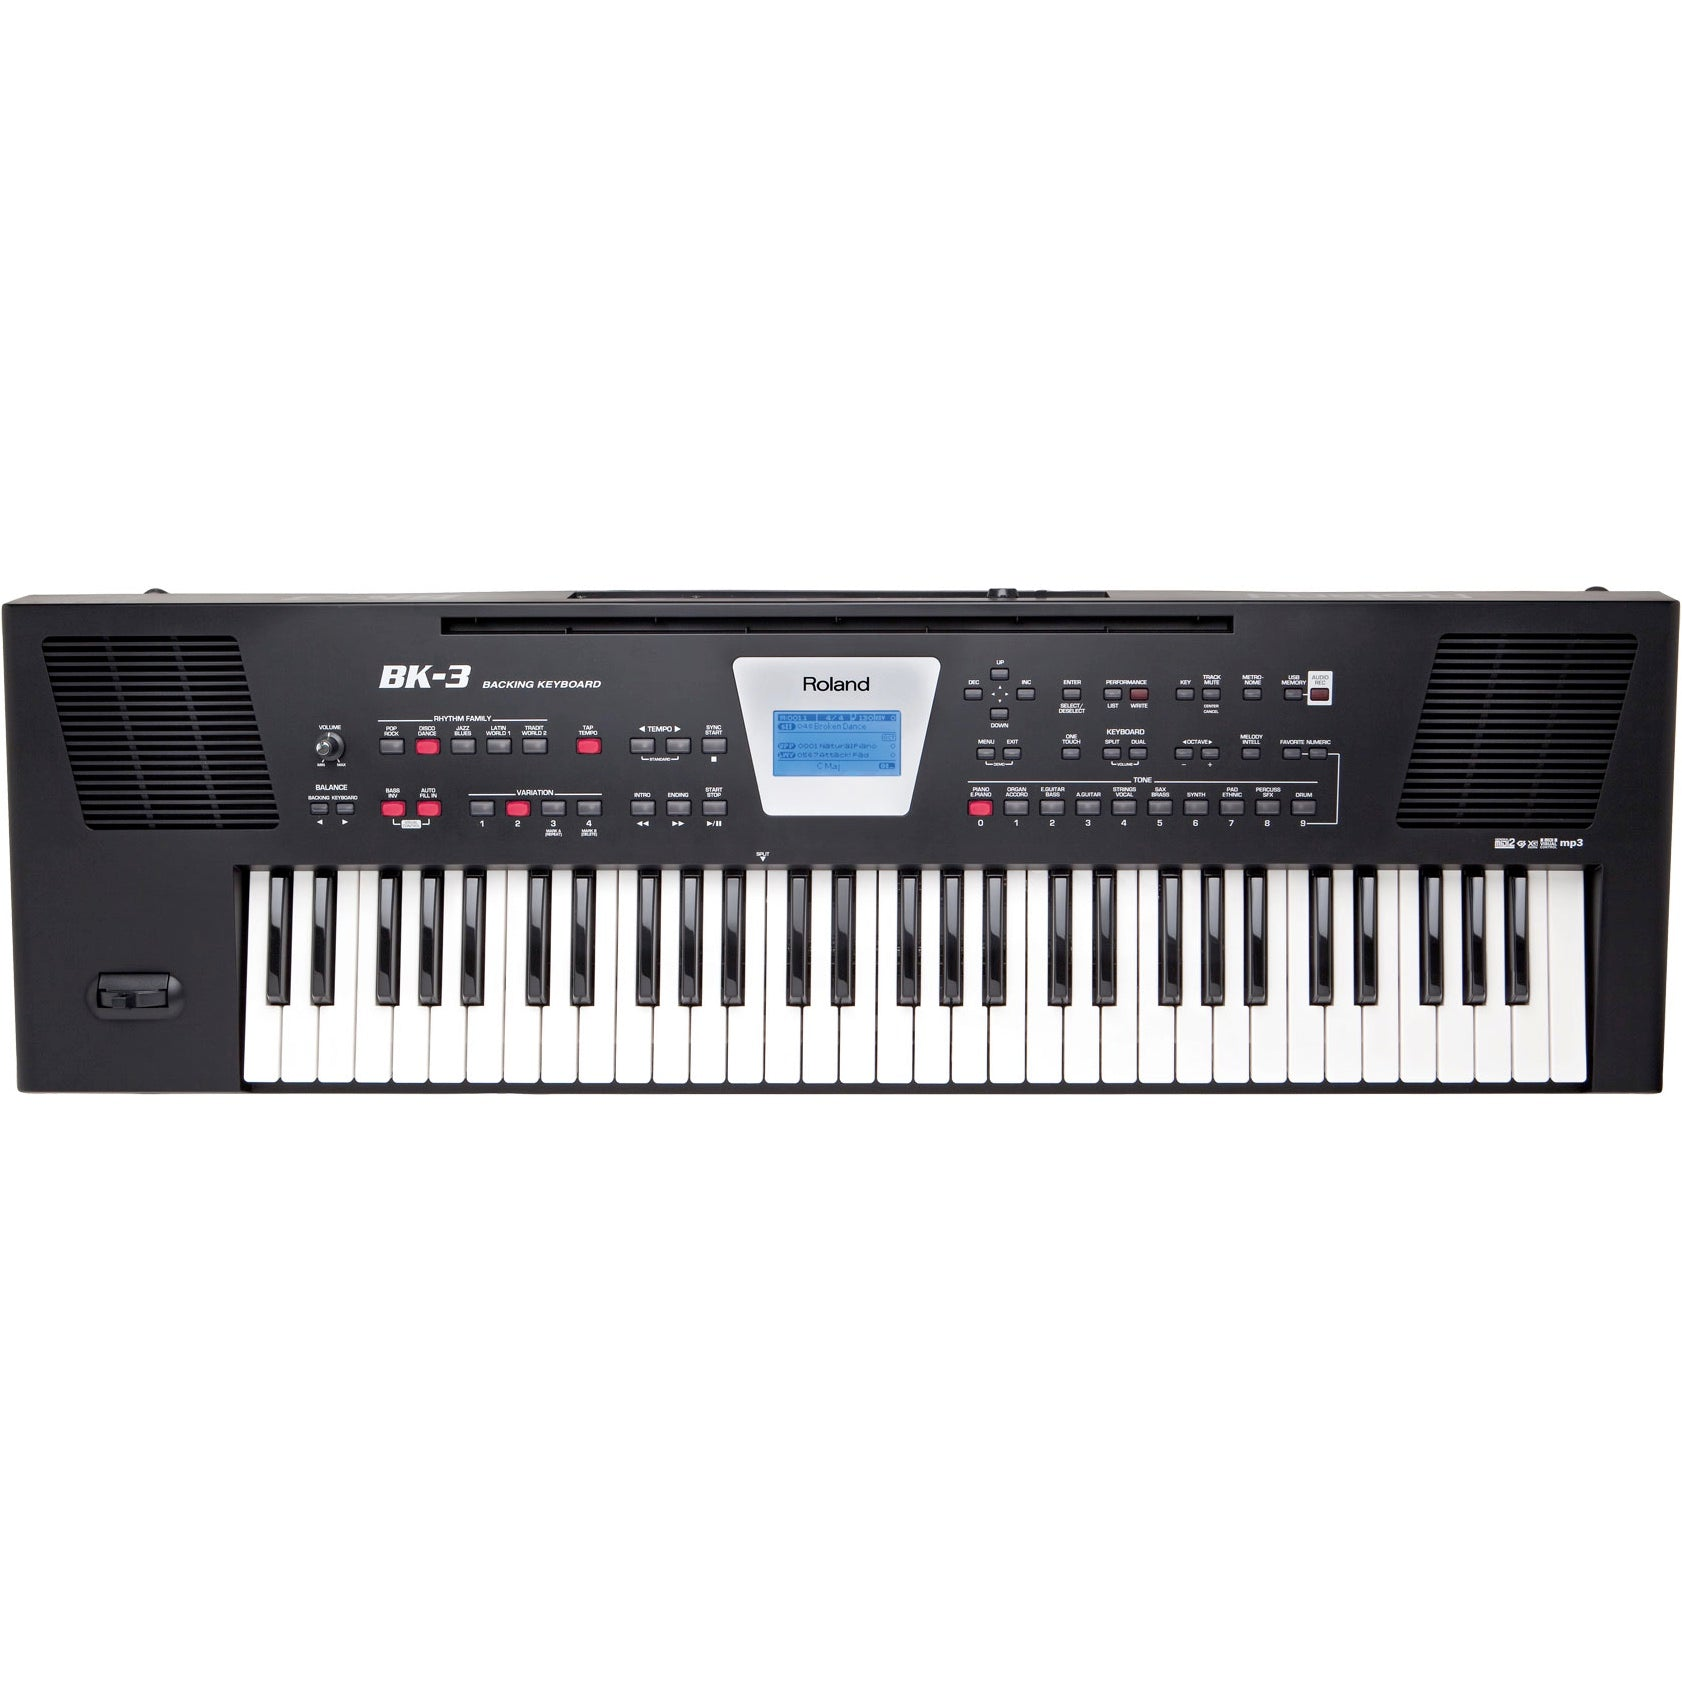 Roland BK-3 61 key Backing & Arranger Keyboard | Music Experience | Shop Online | South Africa